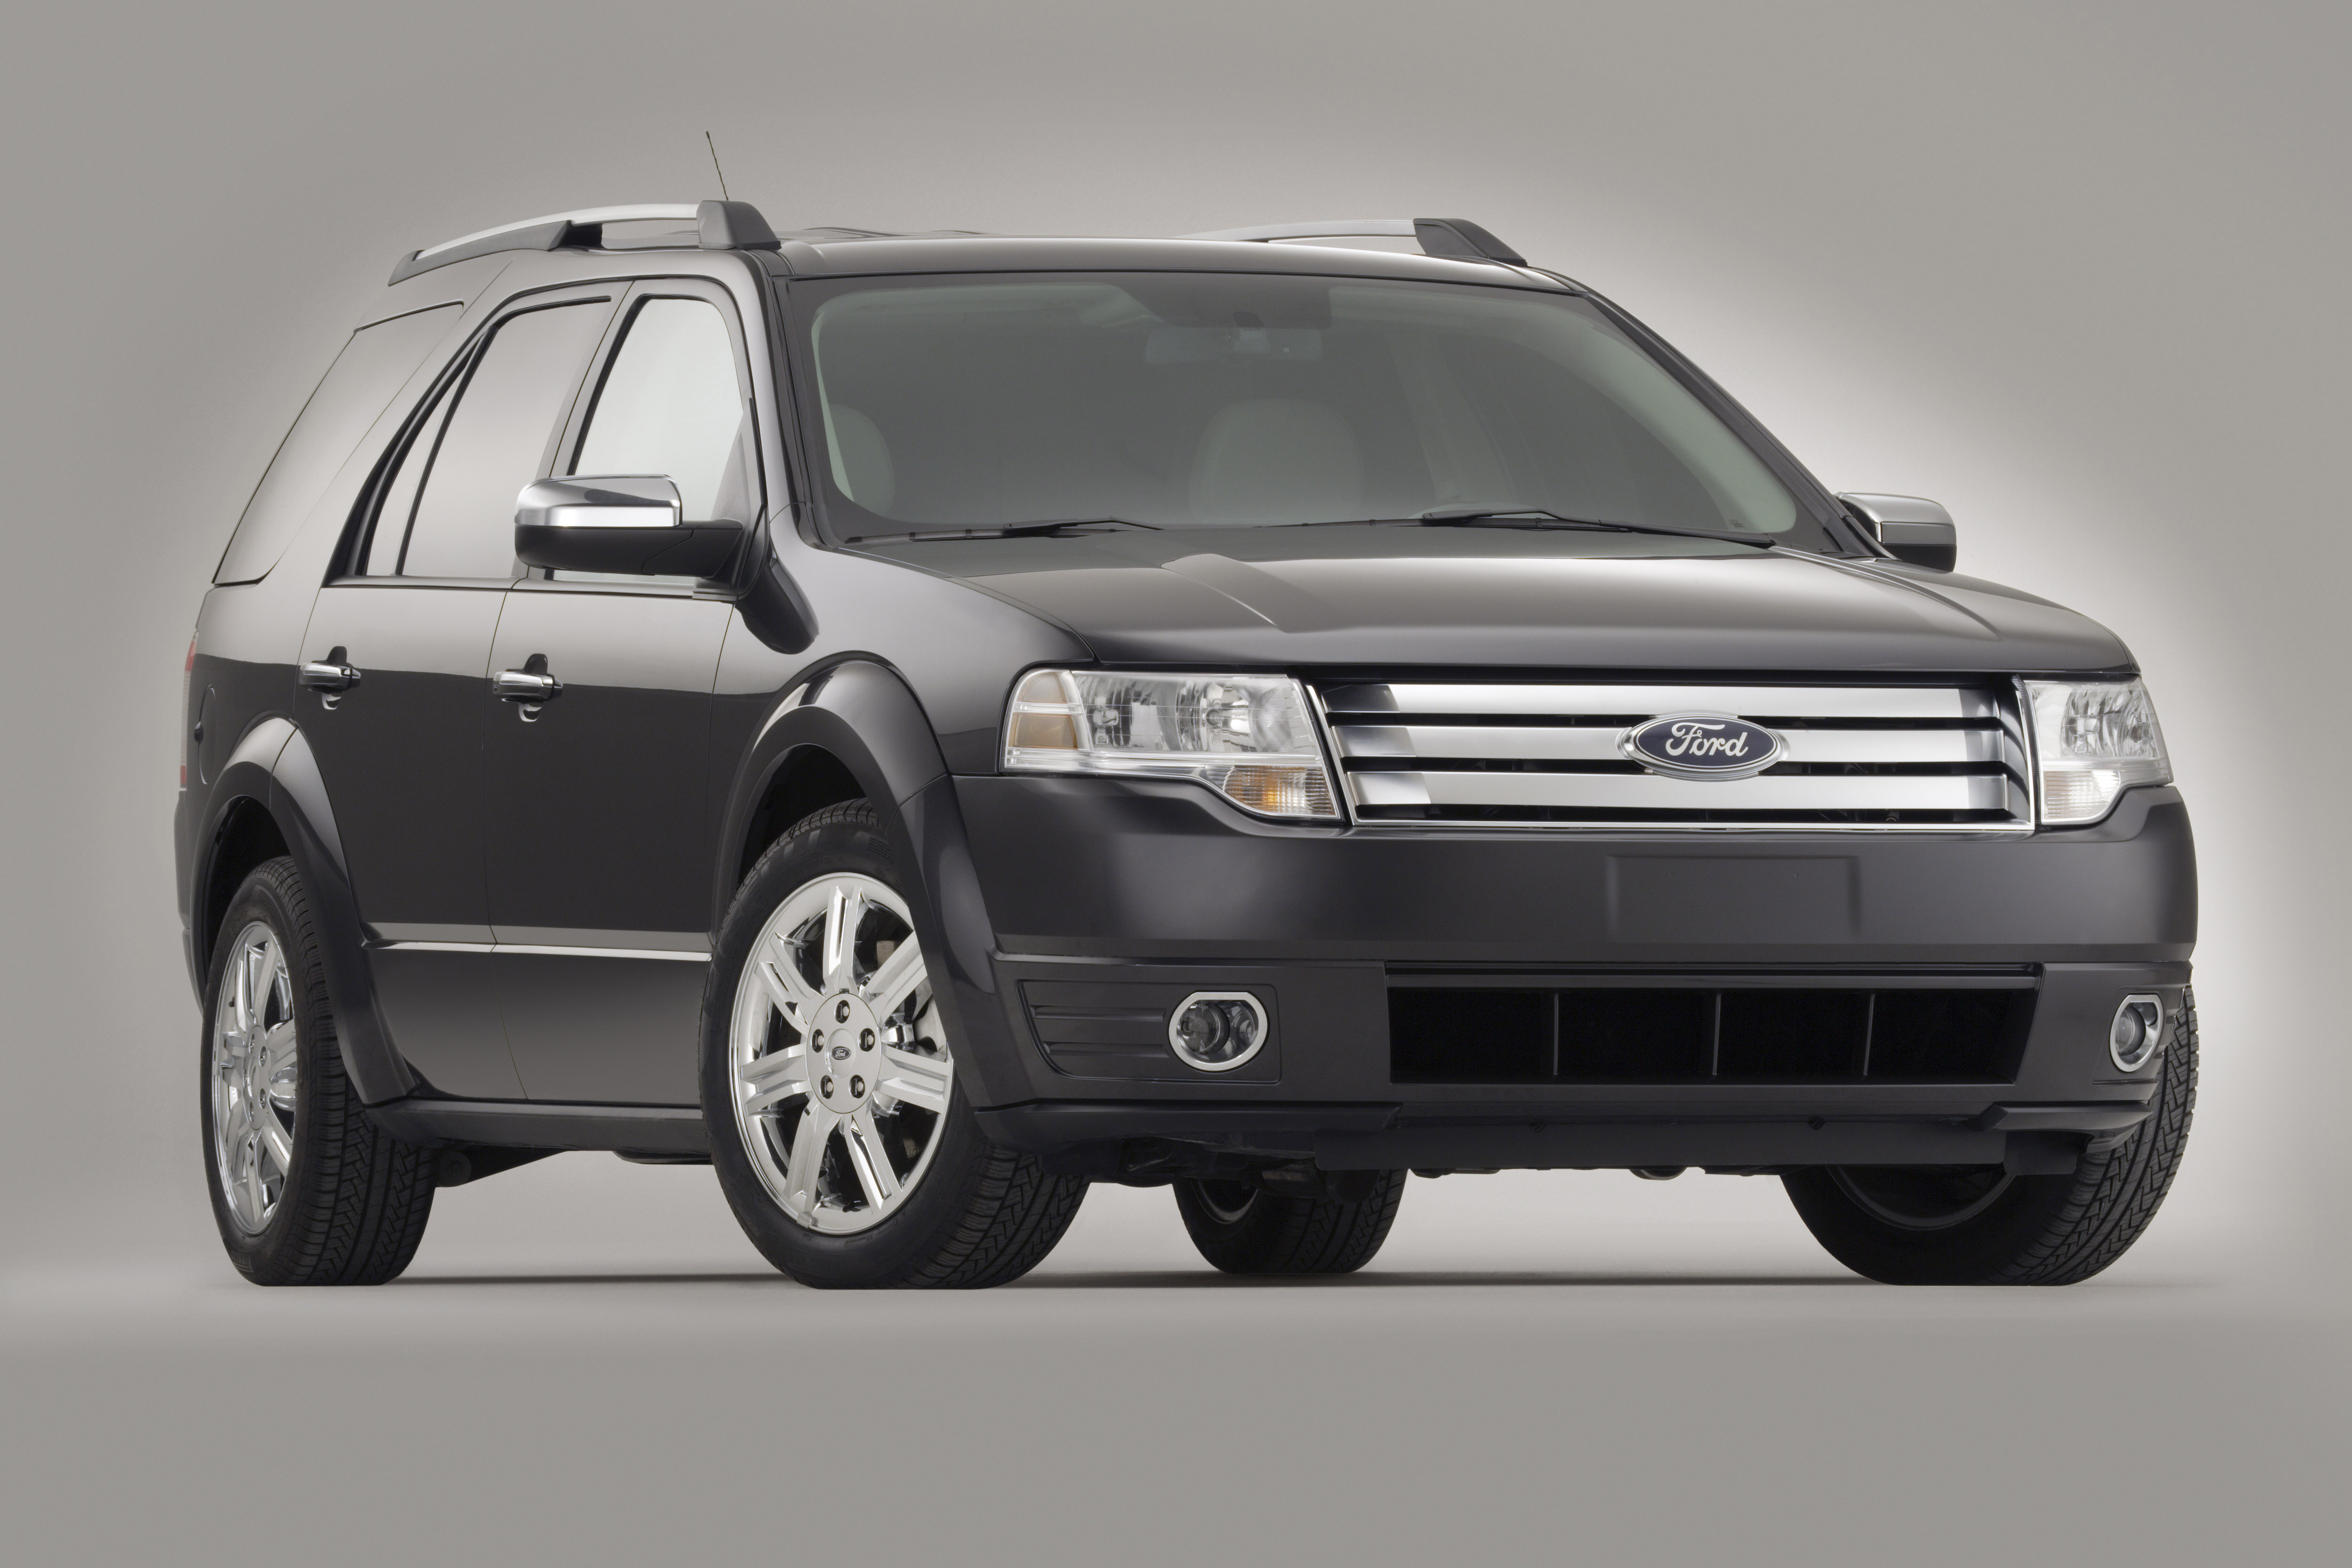 ... Ford Taurus X 2008, 5 Of 5